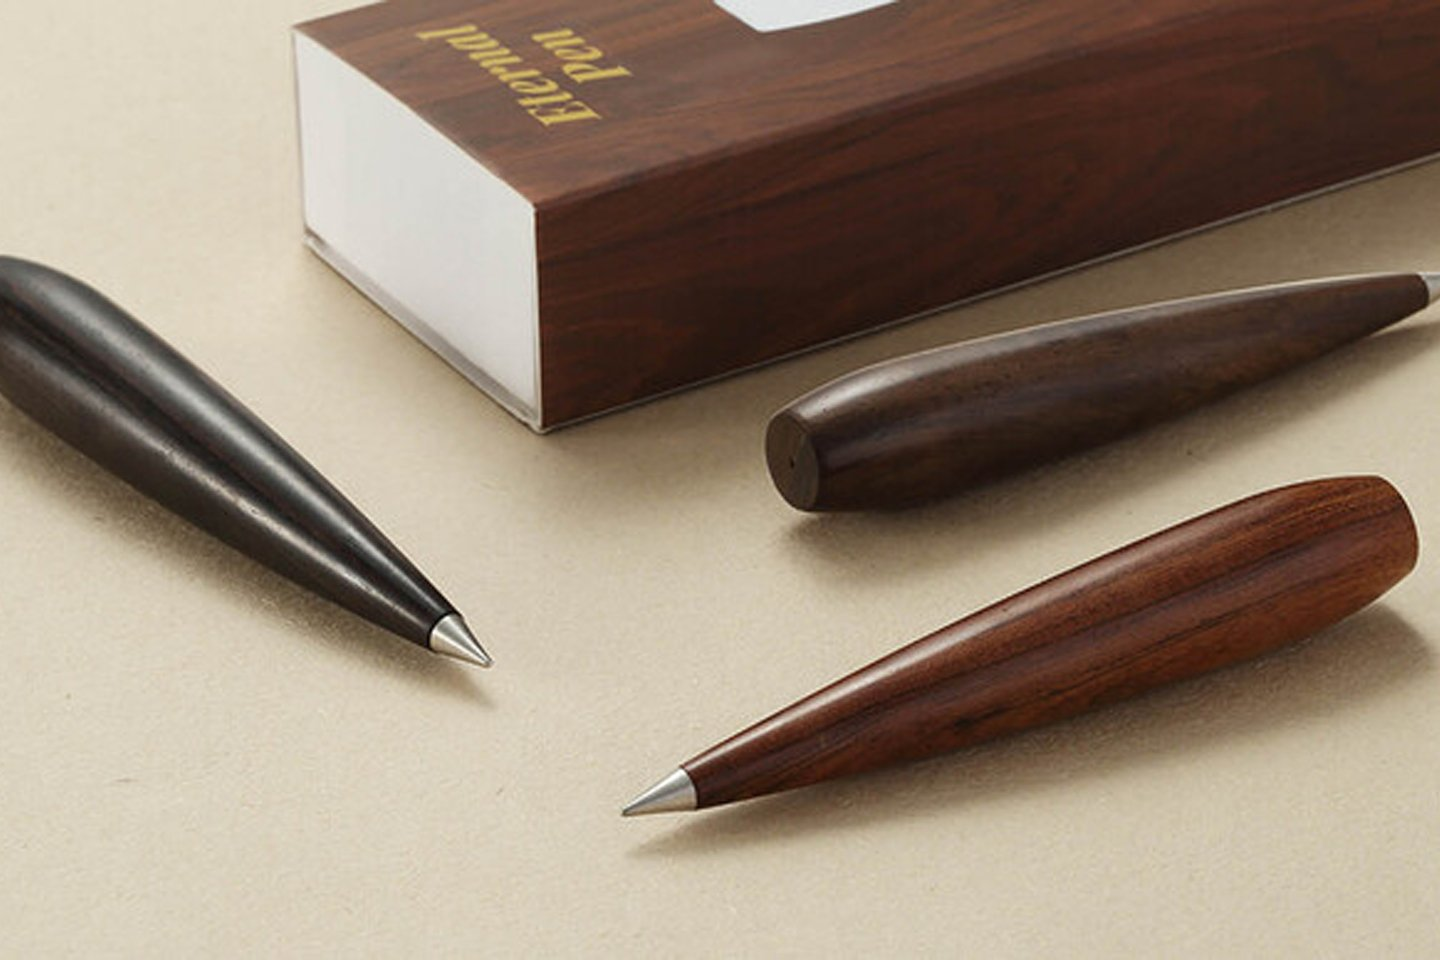 Made from silver and metal alloy, this ergonomic pen surpasses the regular wooden pencil with its ink-less design!